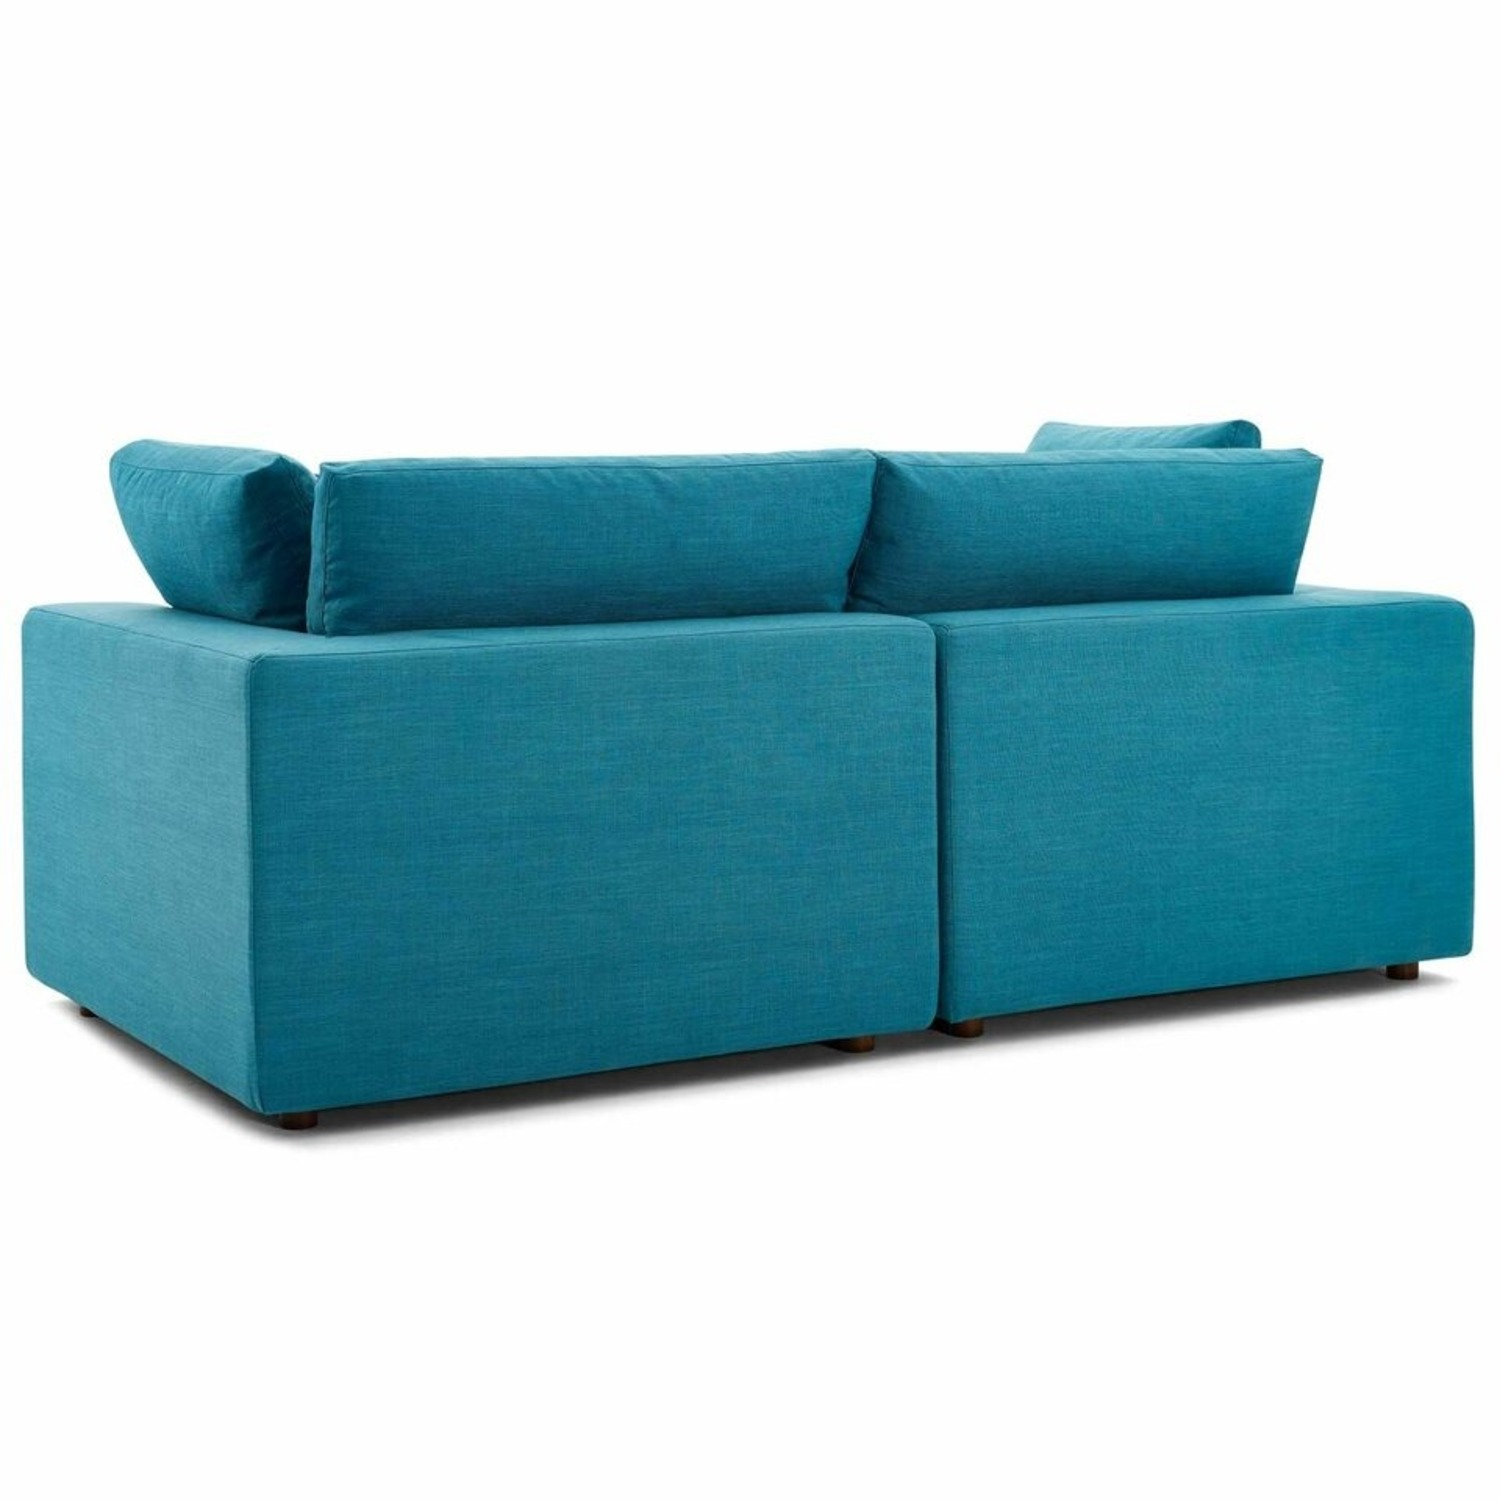 2-Piece Sectional Sofa In Teal Linen Fabric - image-2